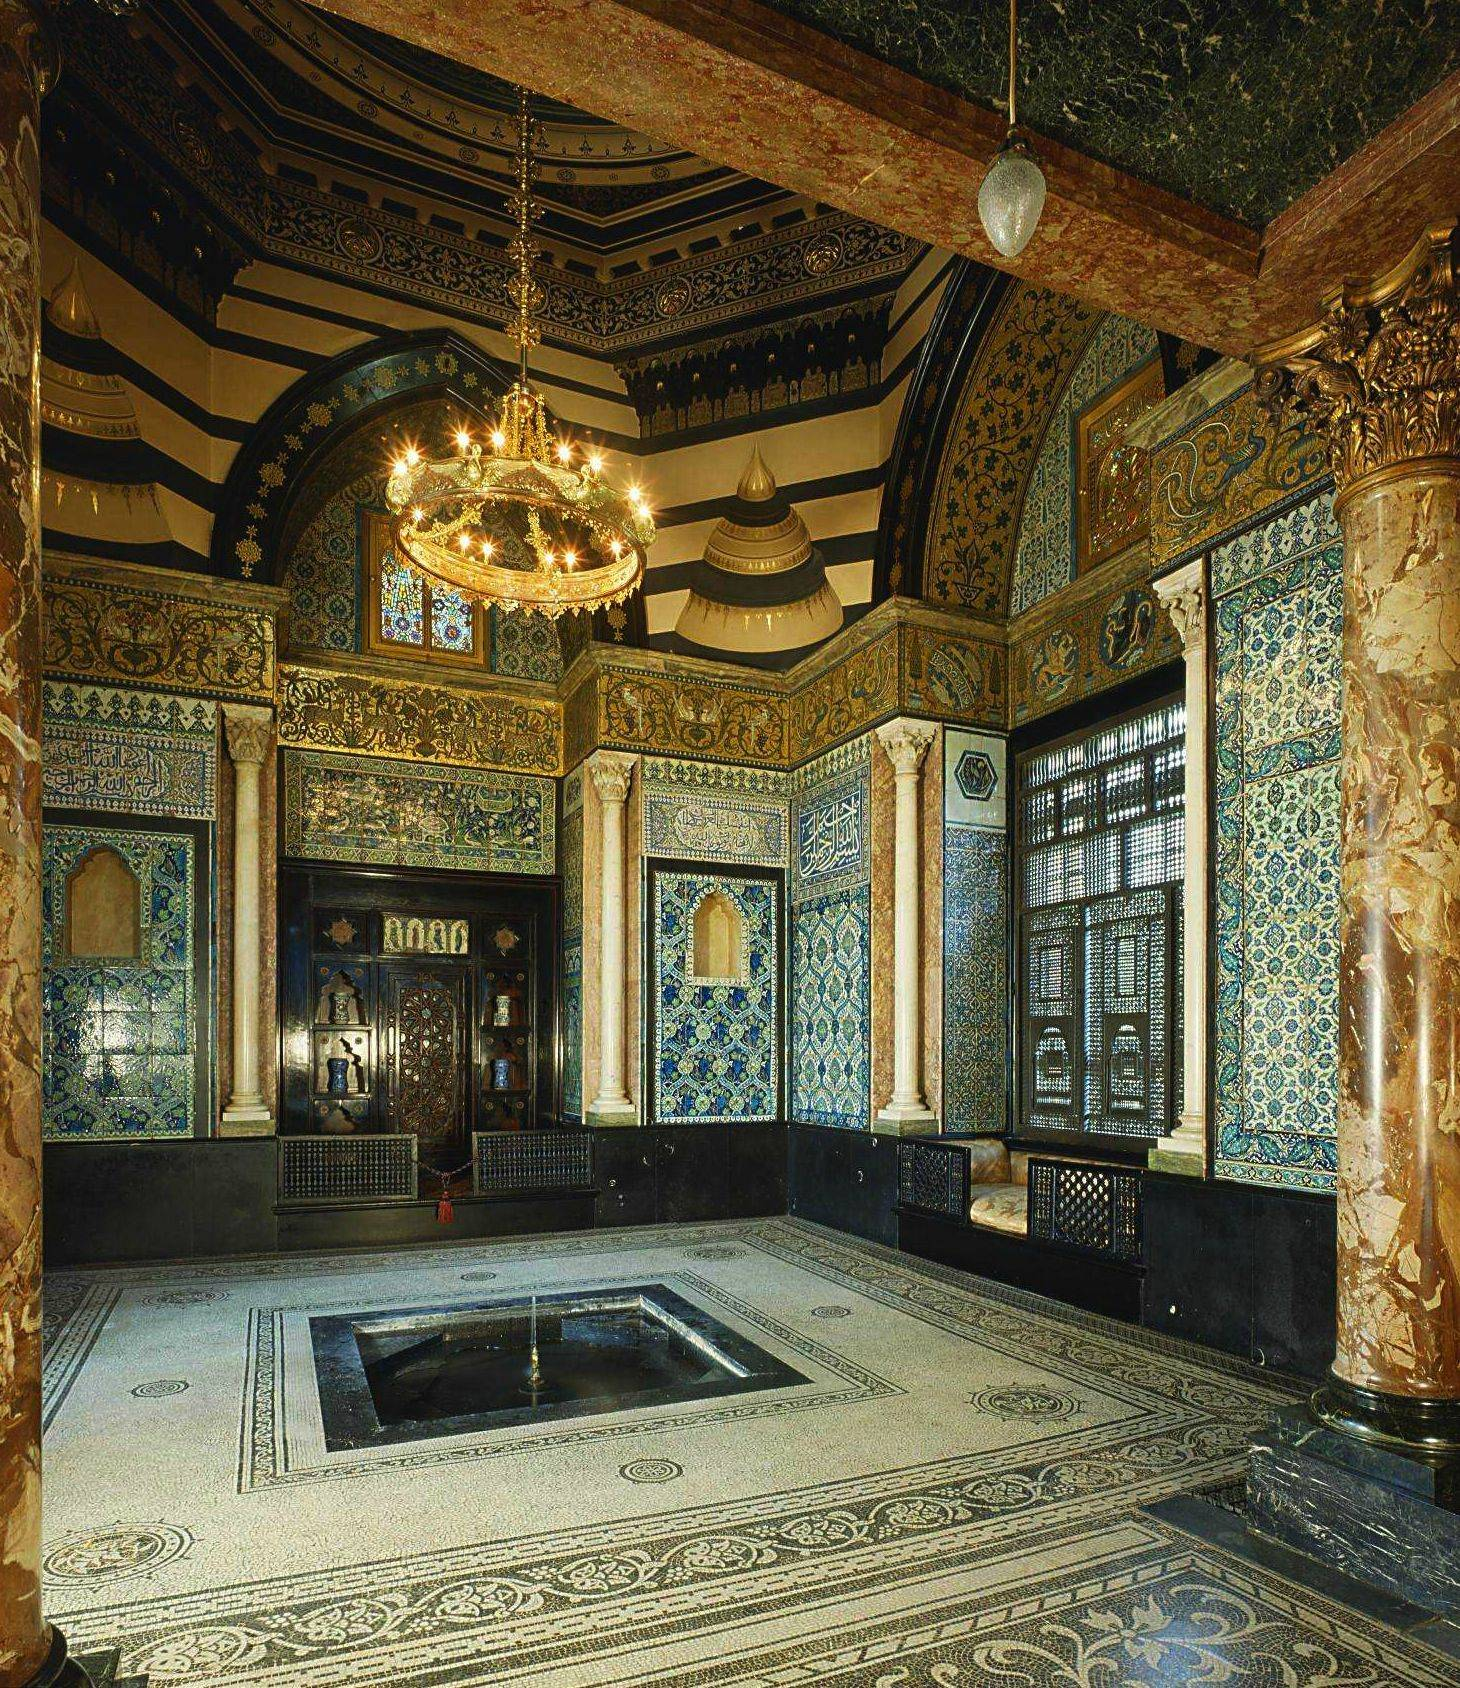 Arab Hall Leighton House London England Interior